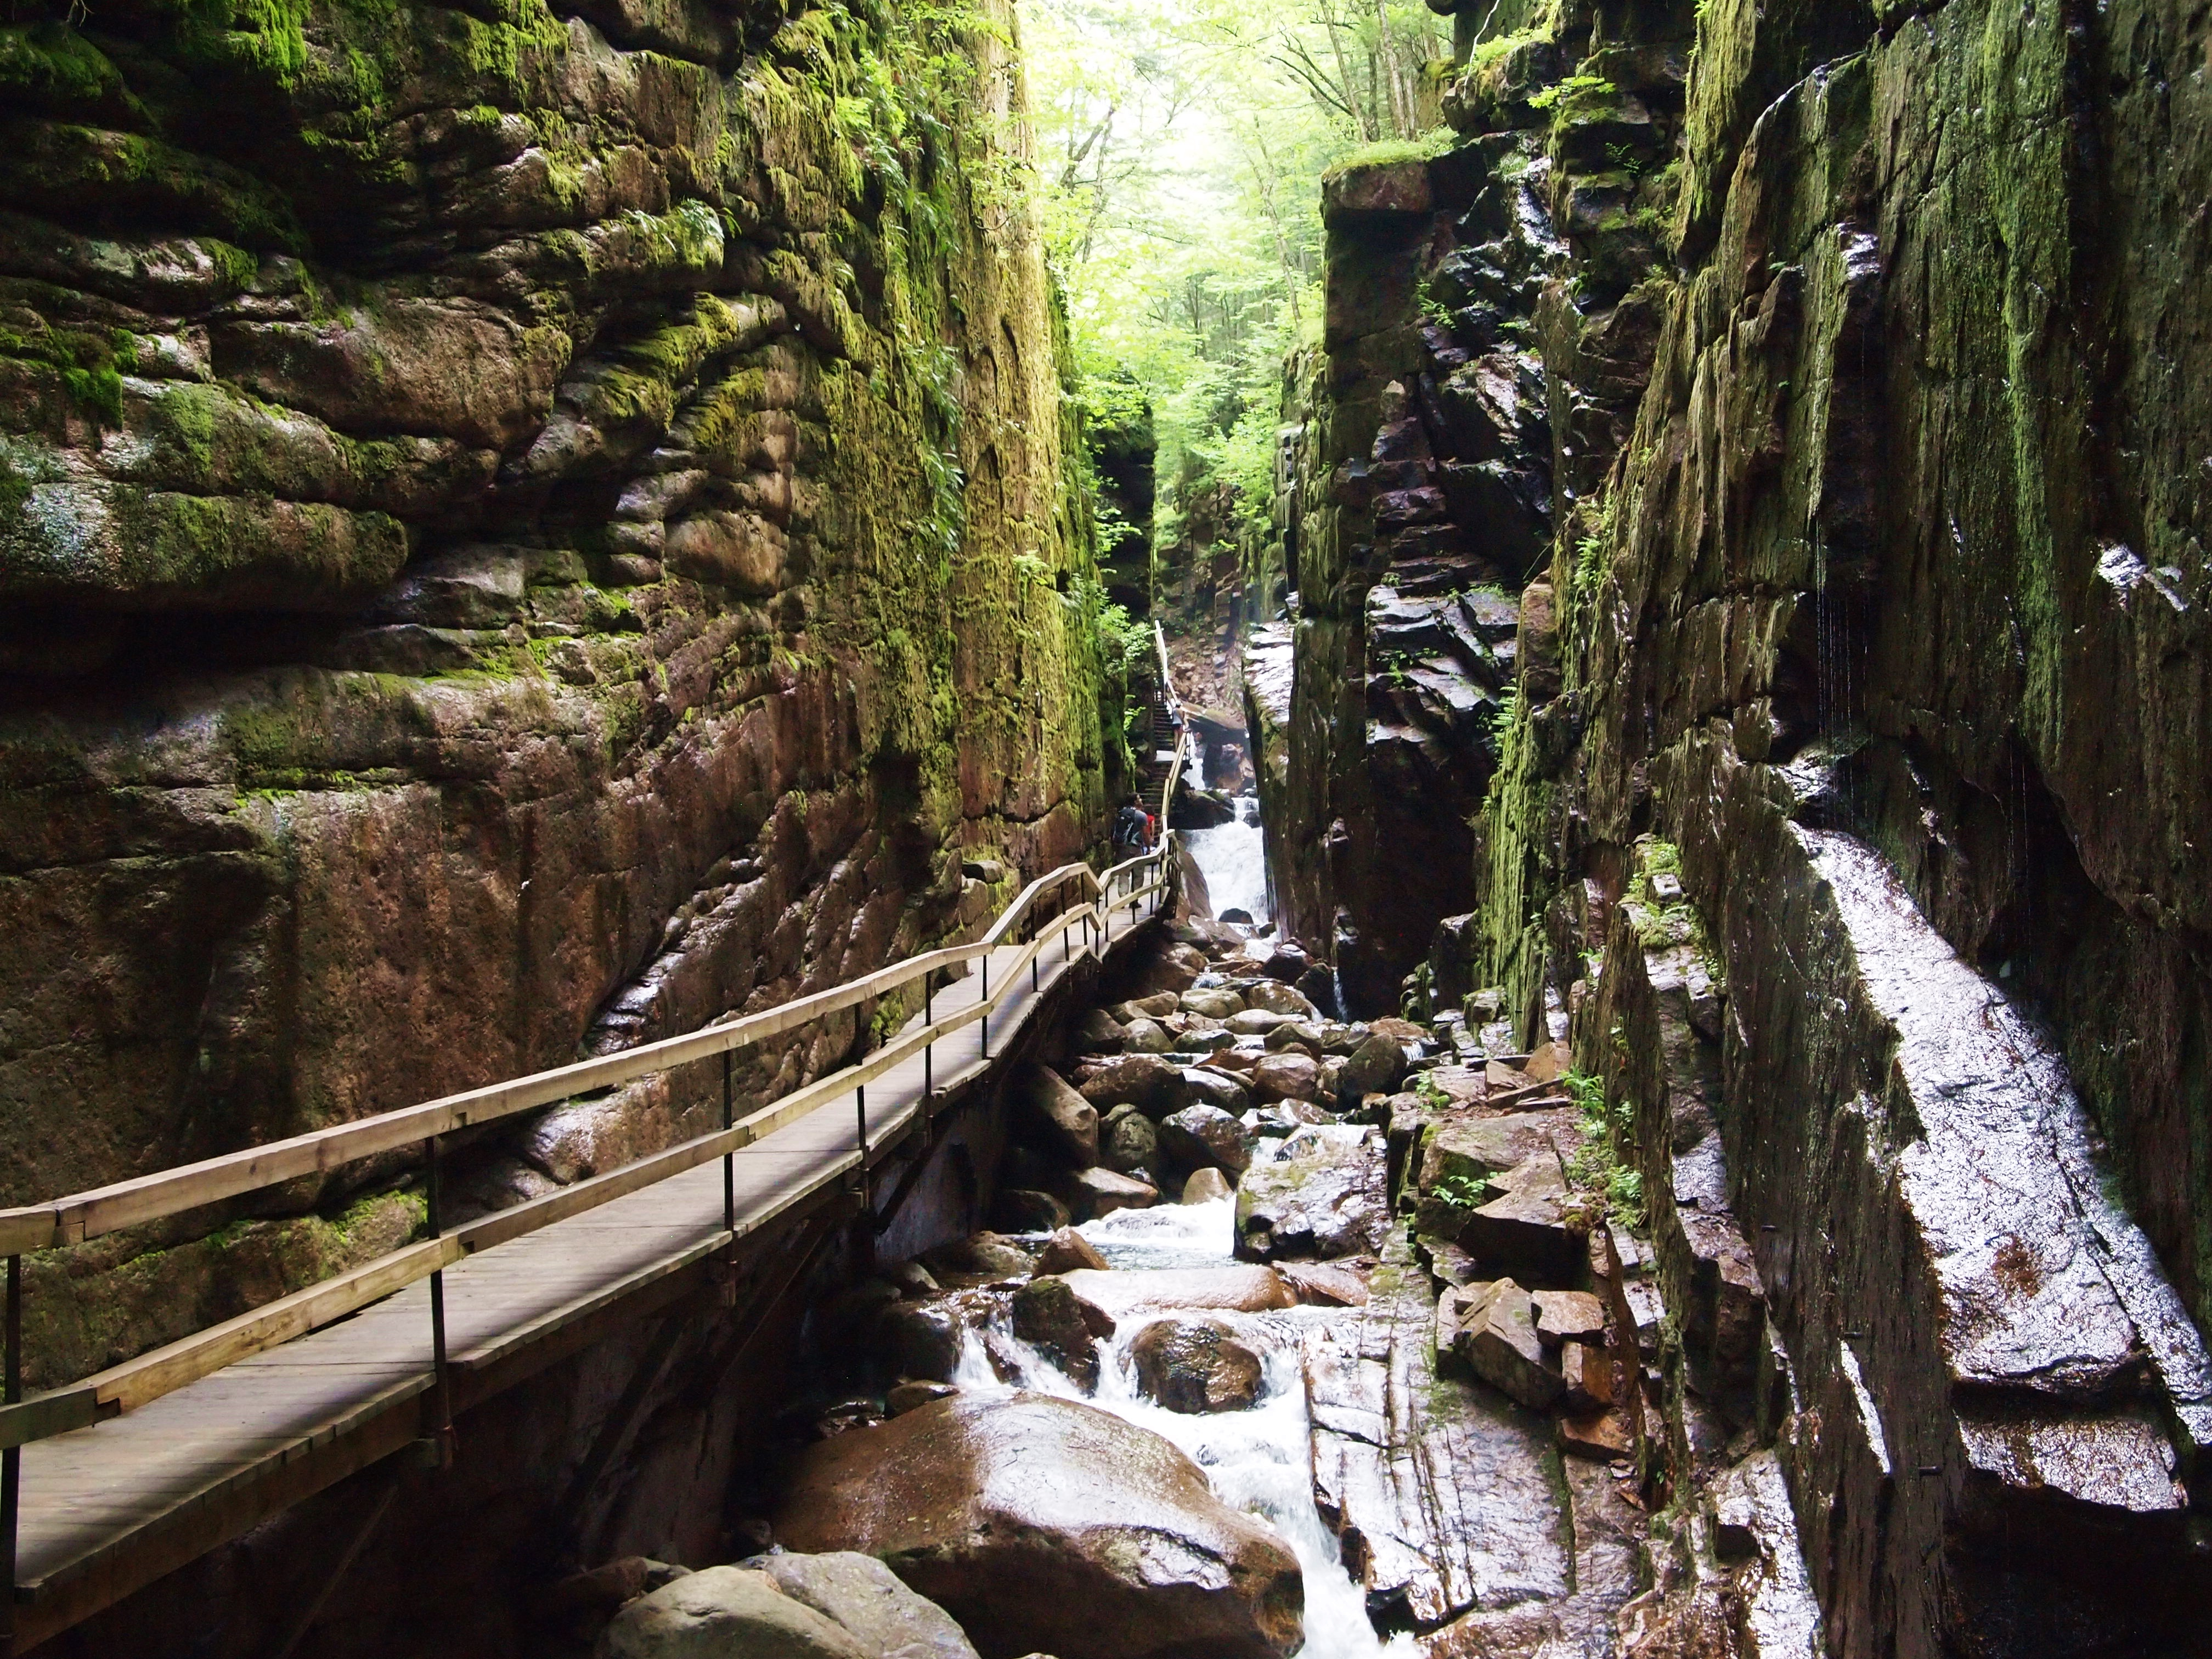 The Flume Gorge in Lincoln, NH | Hiking Through History